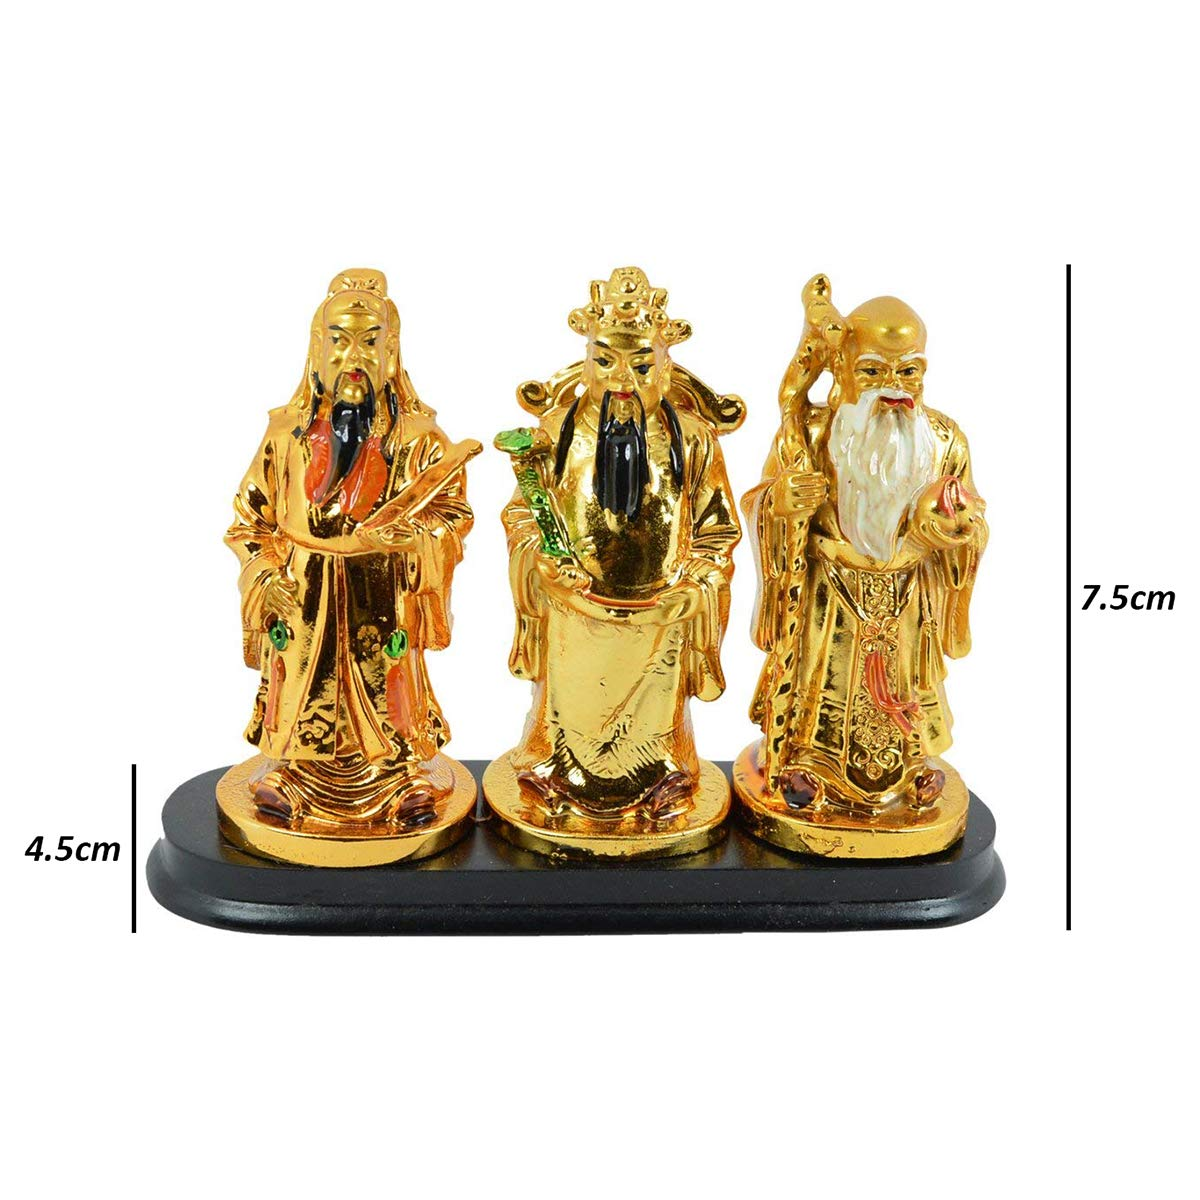 Reiki Crystal Products Fuk Luk Sau, 3 Wise Men and Chinese Gods of Health  Wealth and Happiness Symbol Vastu / Feng Shui